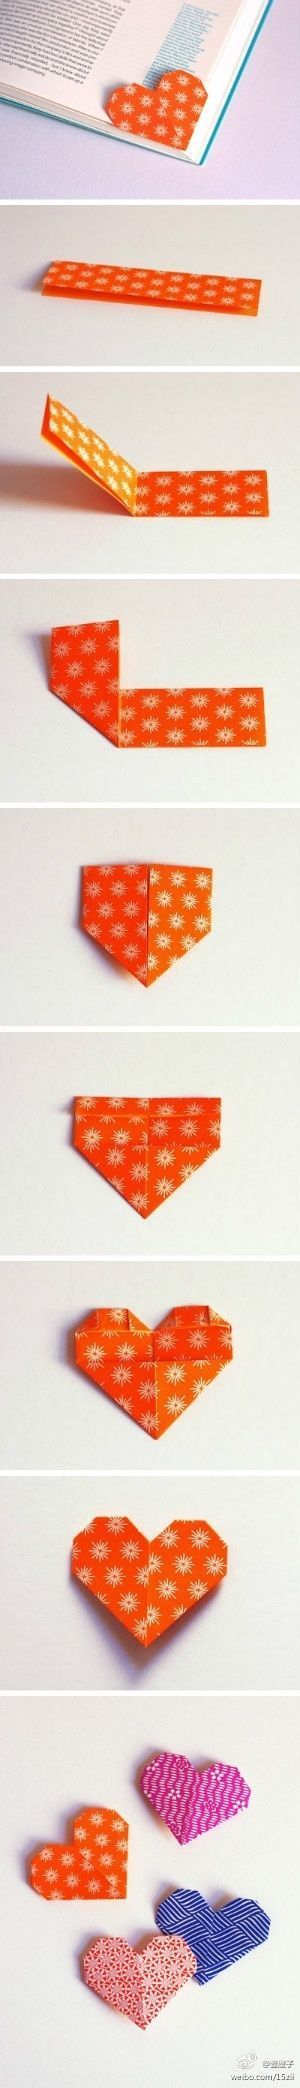 Folded Paper Heart Book Page Marker DIY